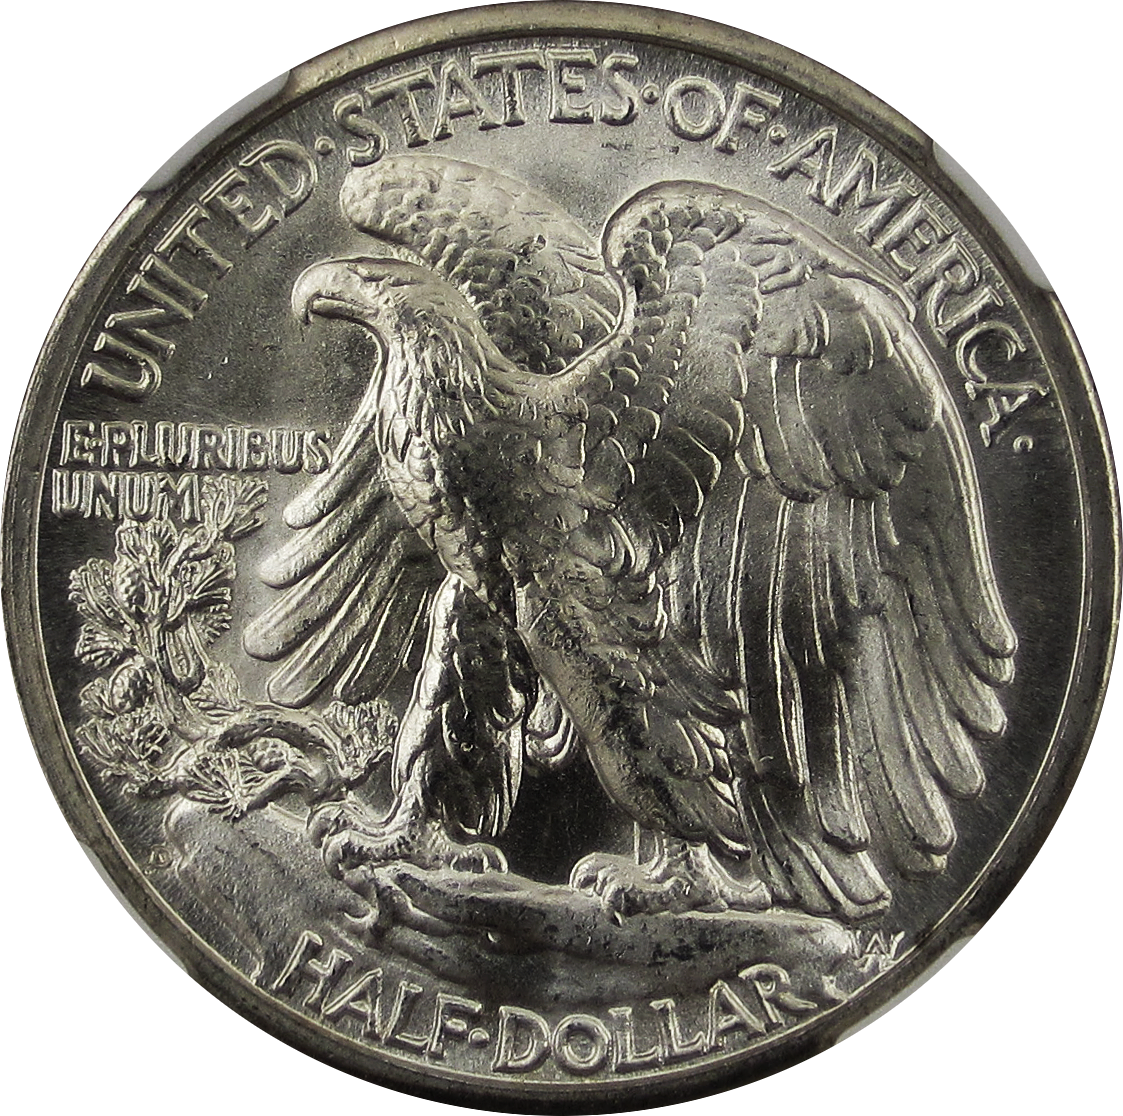 Are Half Dollars Valuable? - Silver Half Dollars